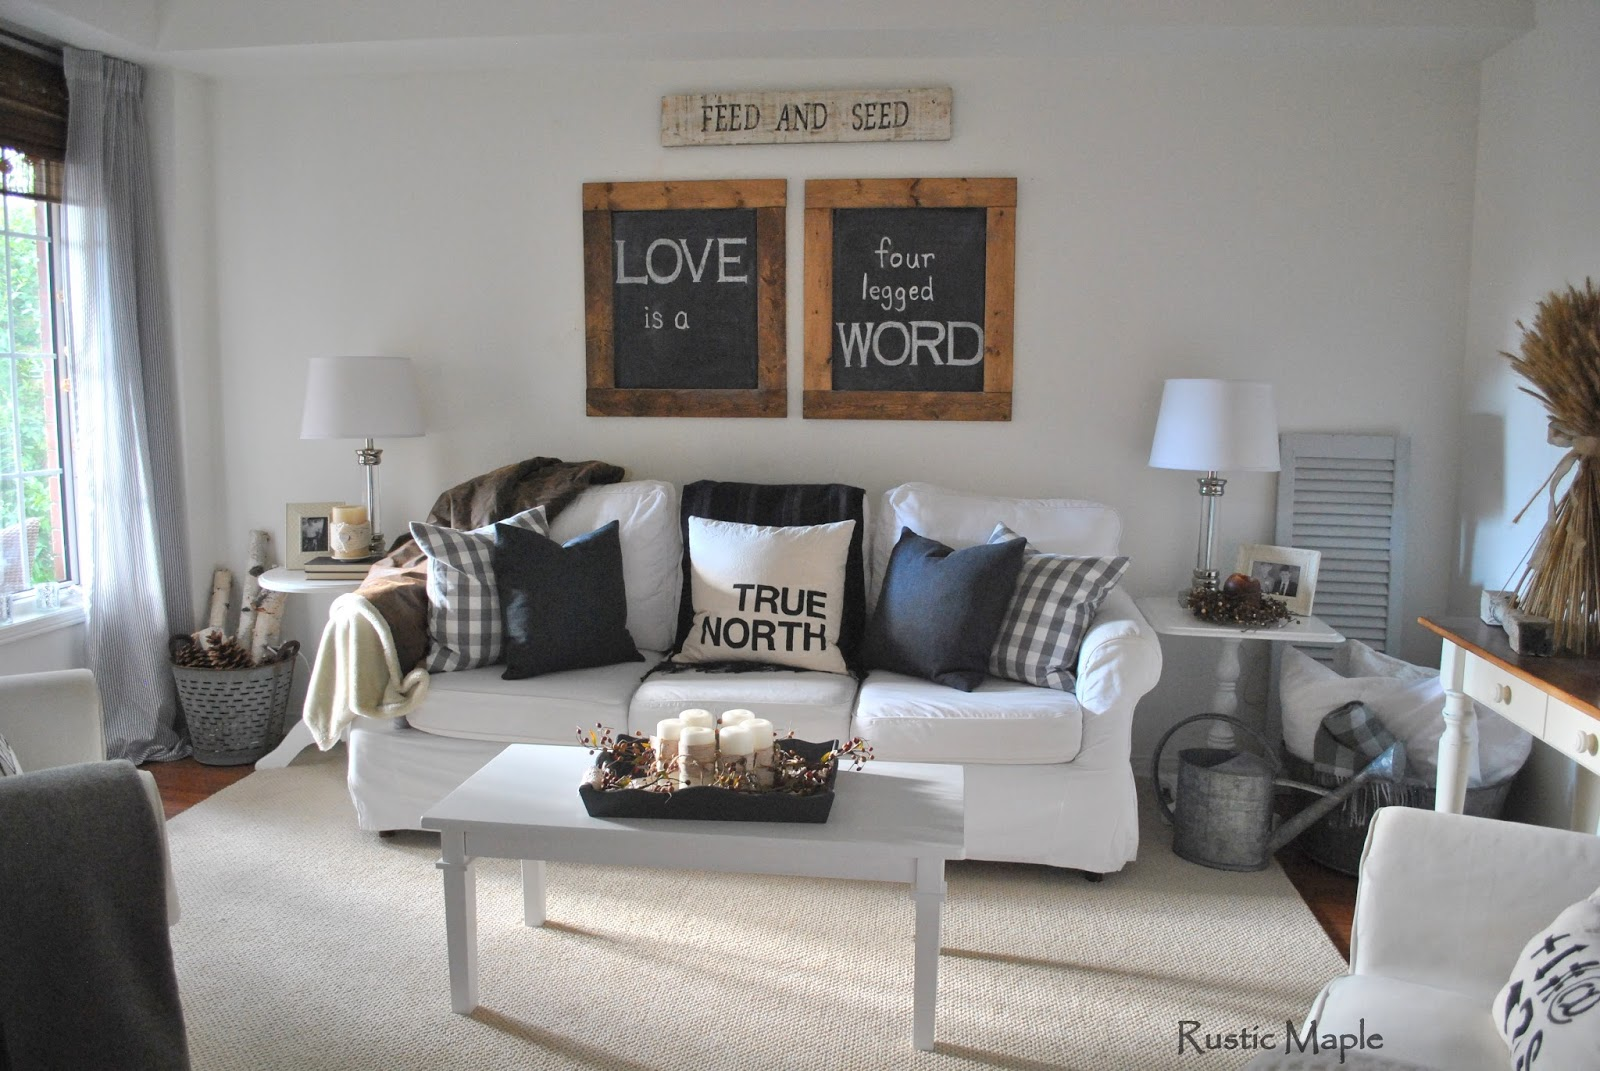 Rustic Maple: Our Neutral Fall Living Room Tour